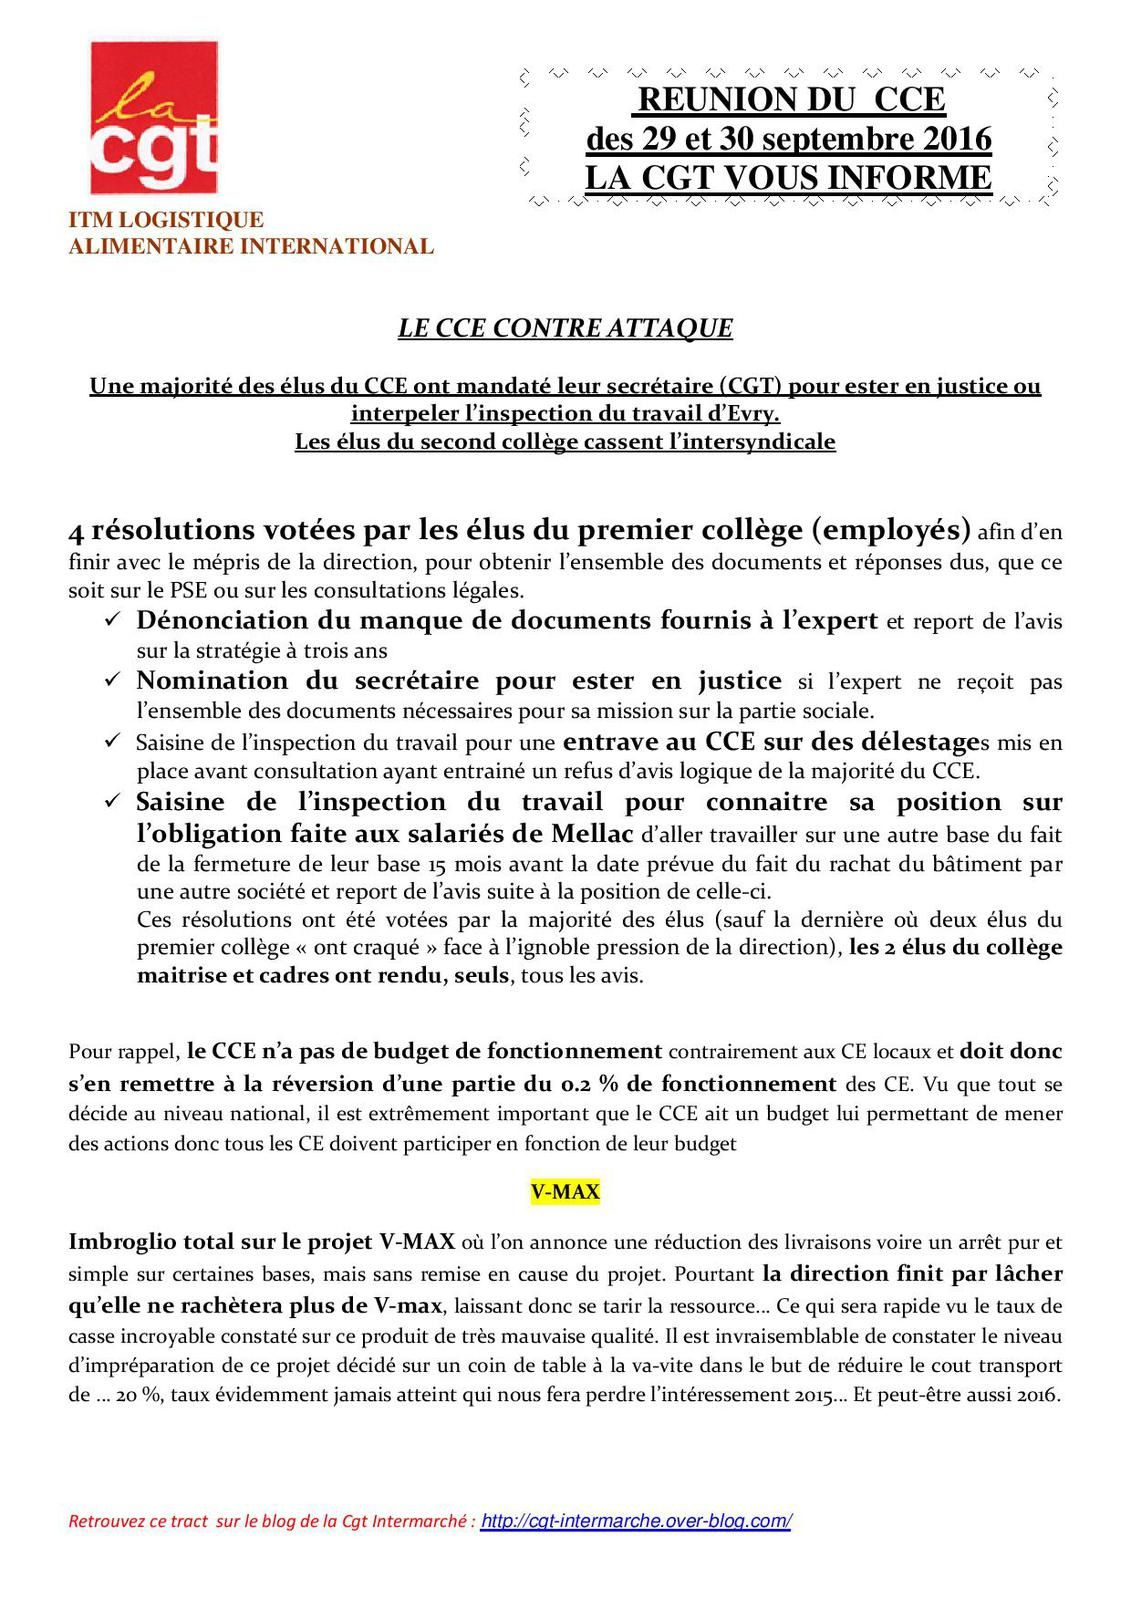 CCE ITMLAI, CGT, INTERMARCHE, BASES LOGISTIQUES